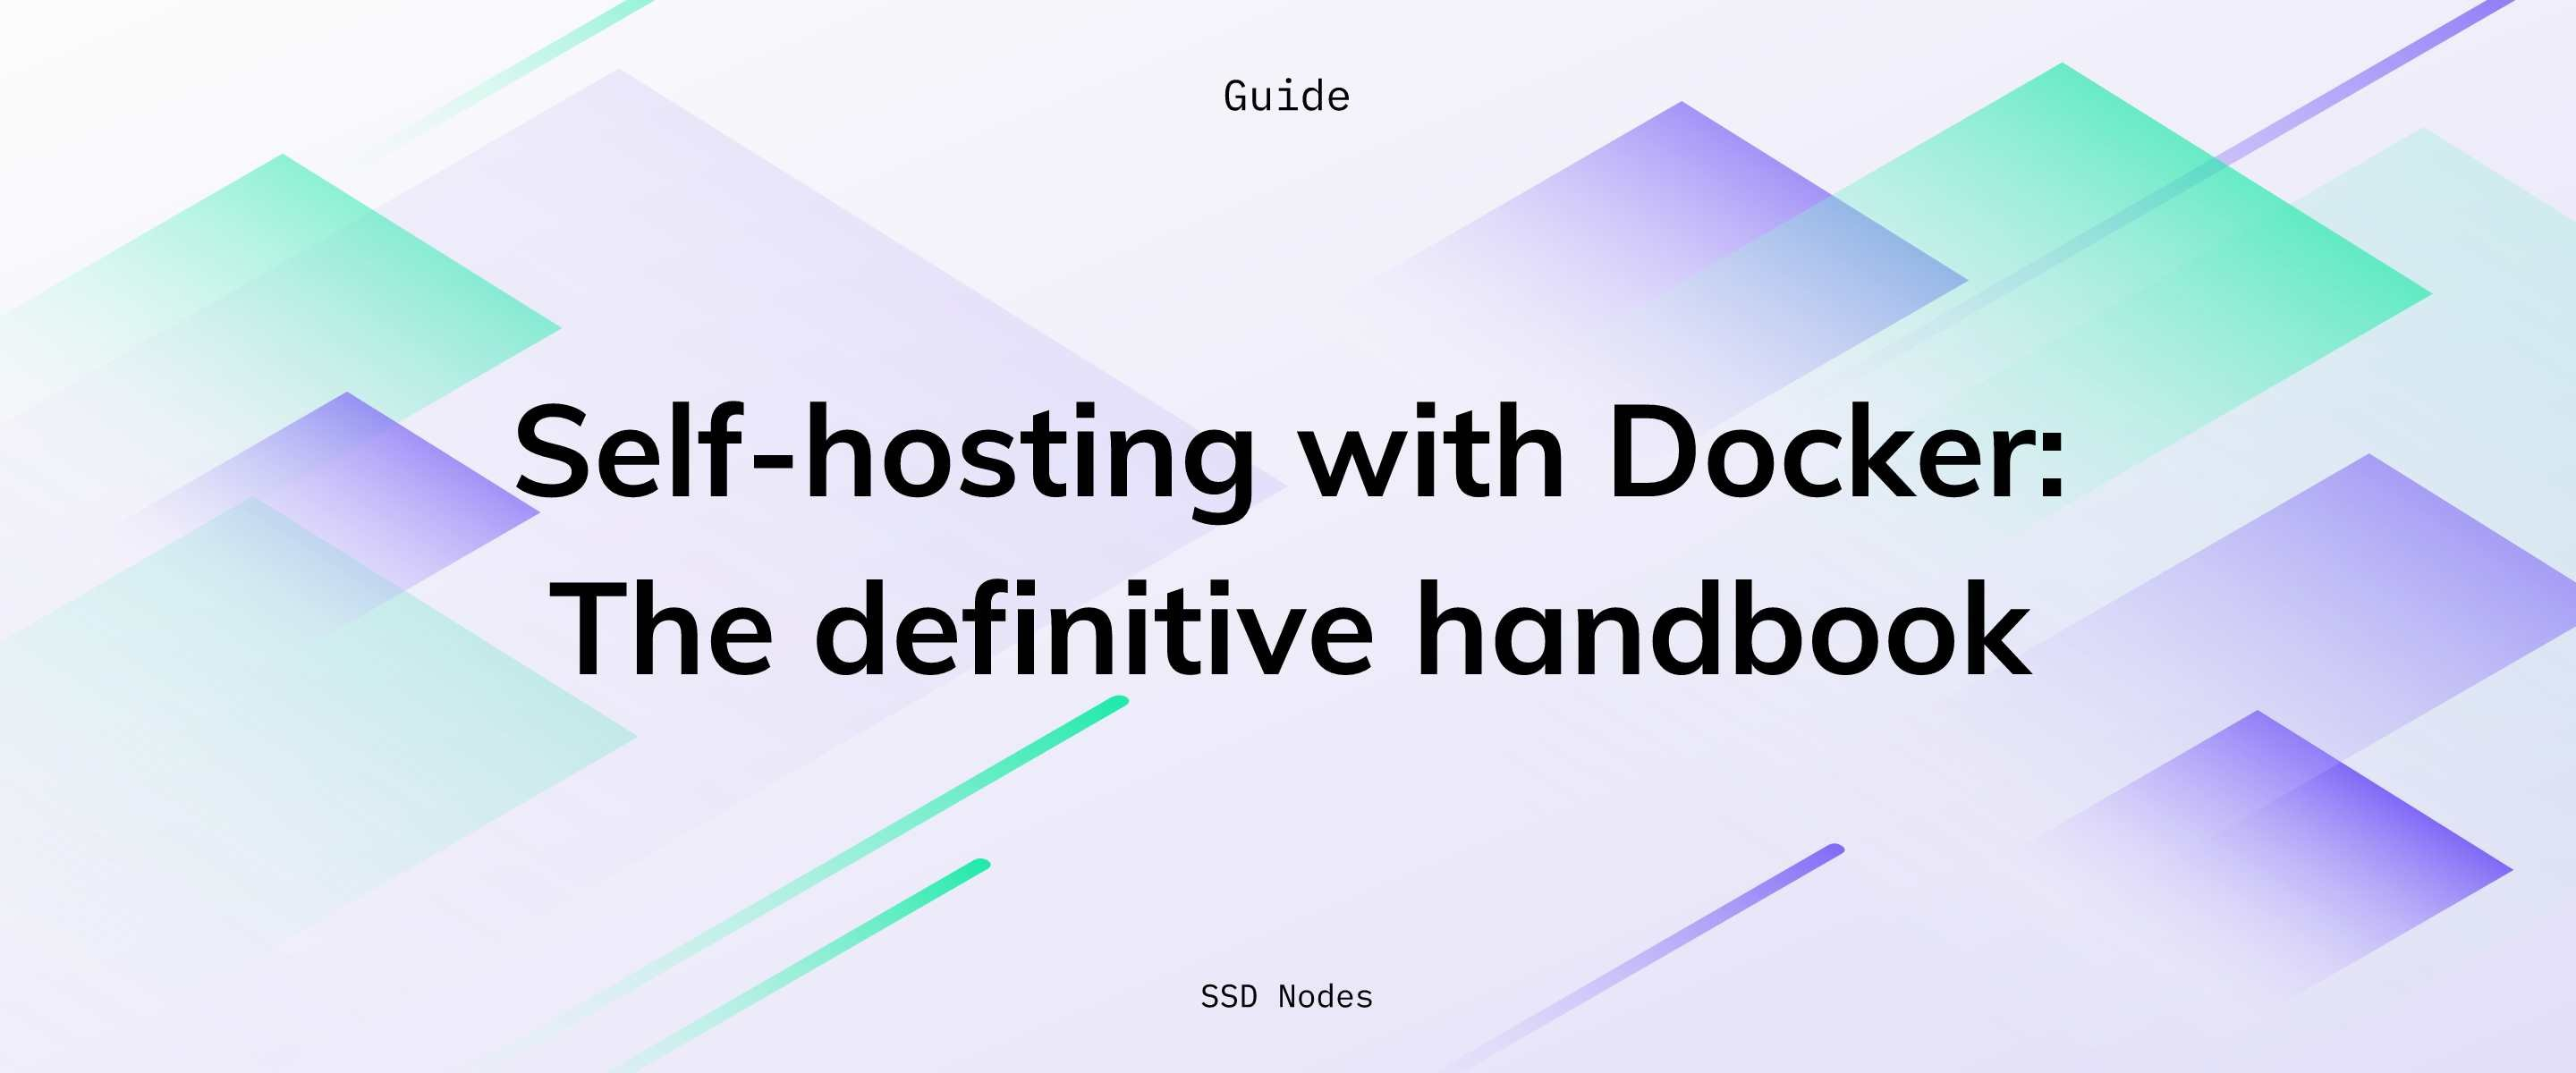 Self-hosting guide